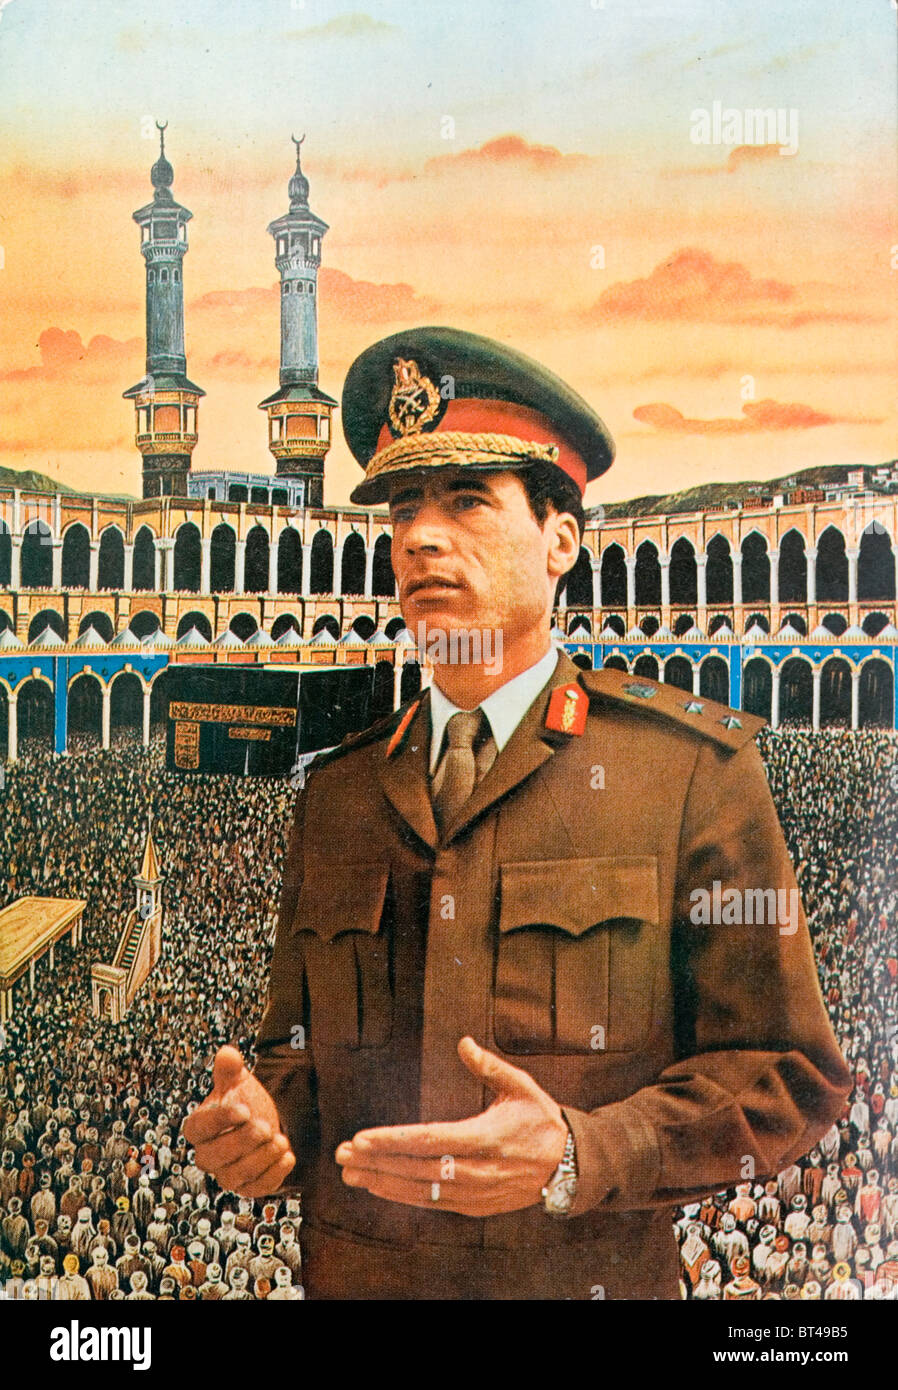 Montage postcard of Colonel Muammar al-Gaddafi pictured in front of a painting of a giant mosque with an enormous - Stock Image